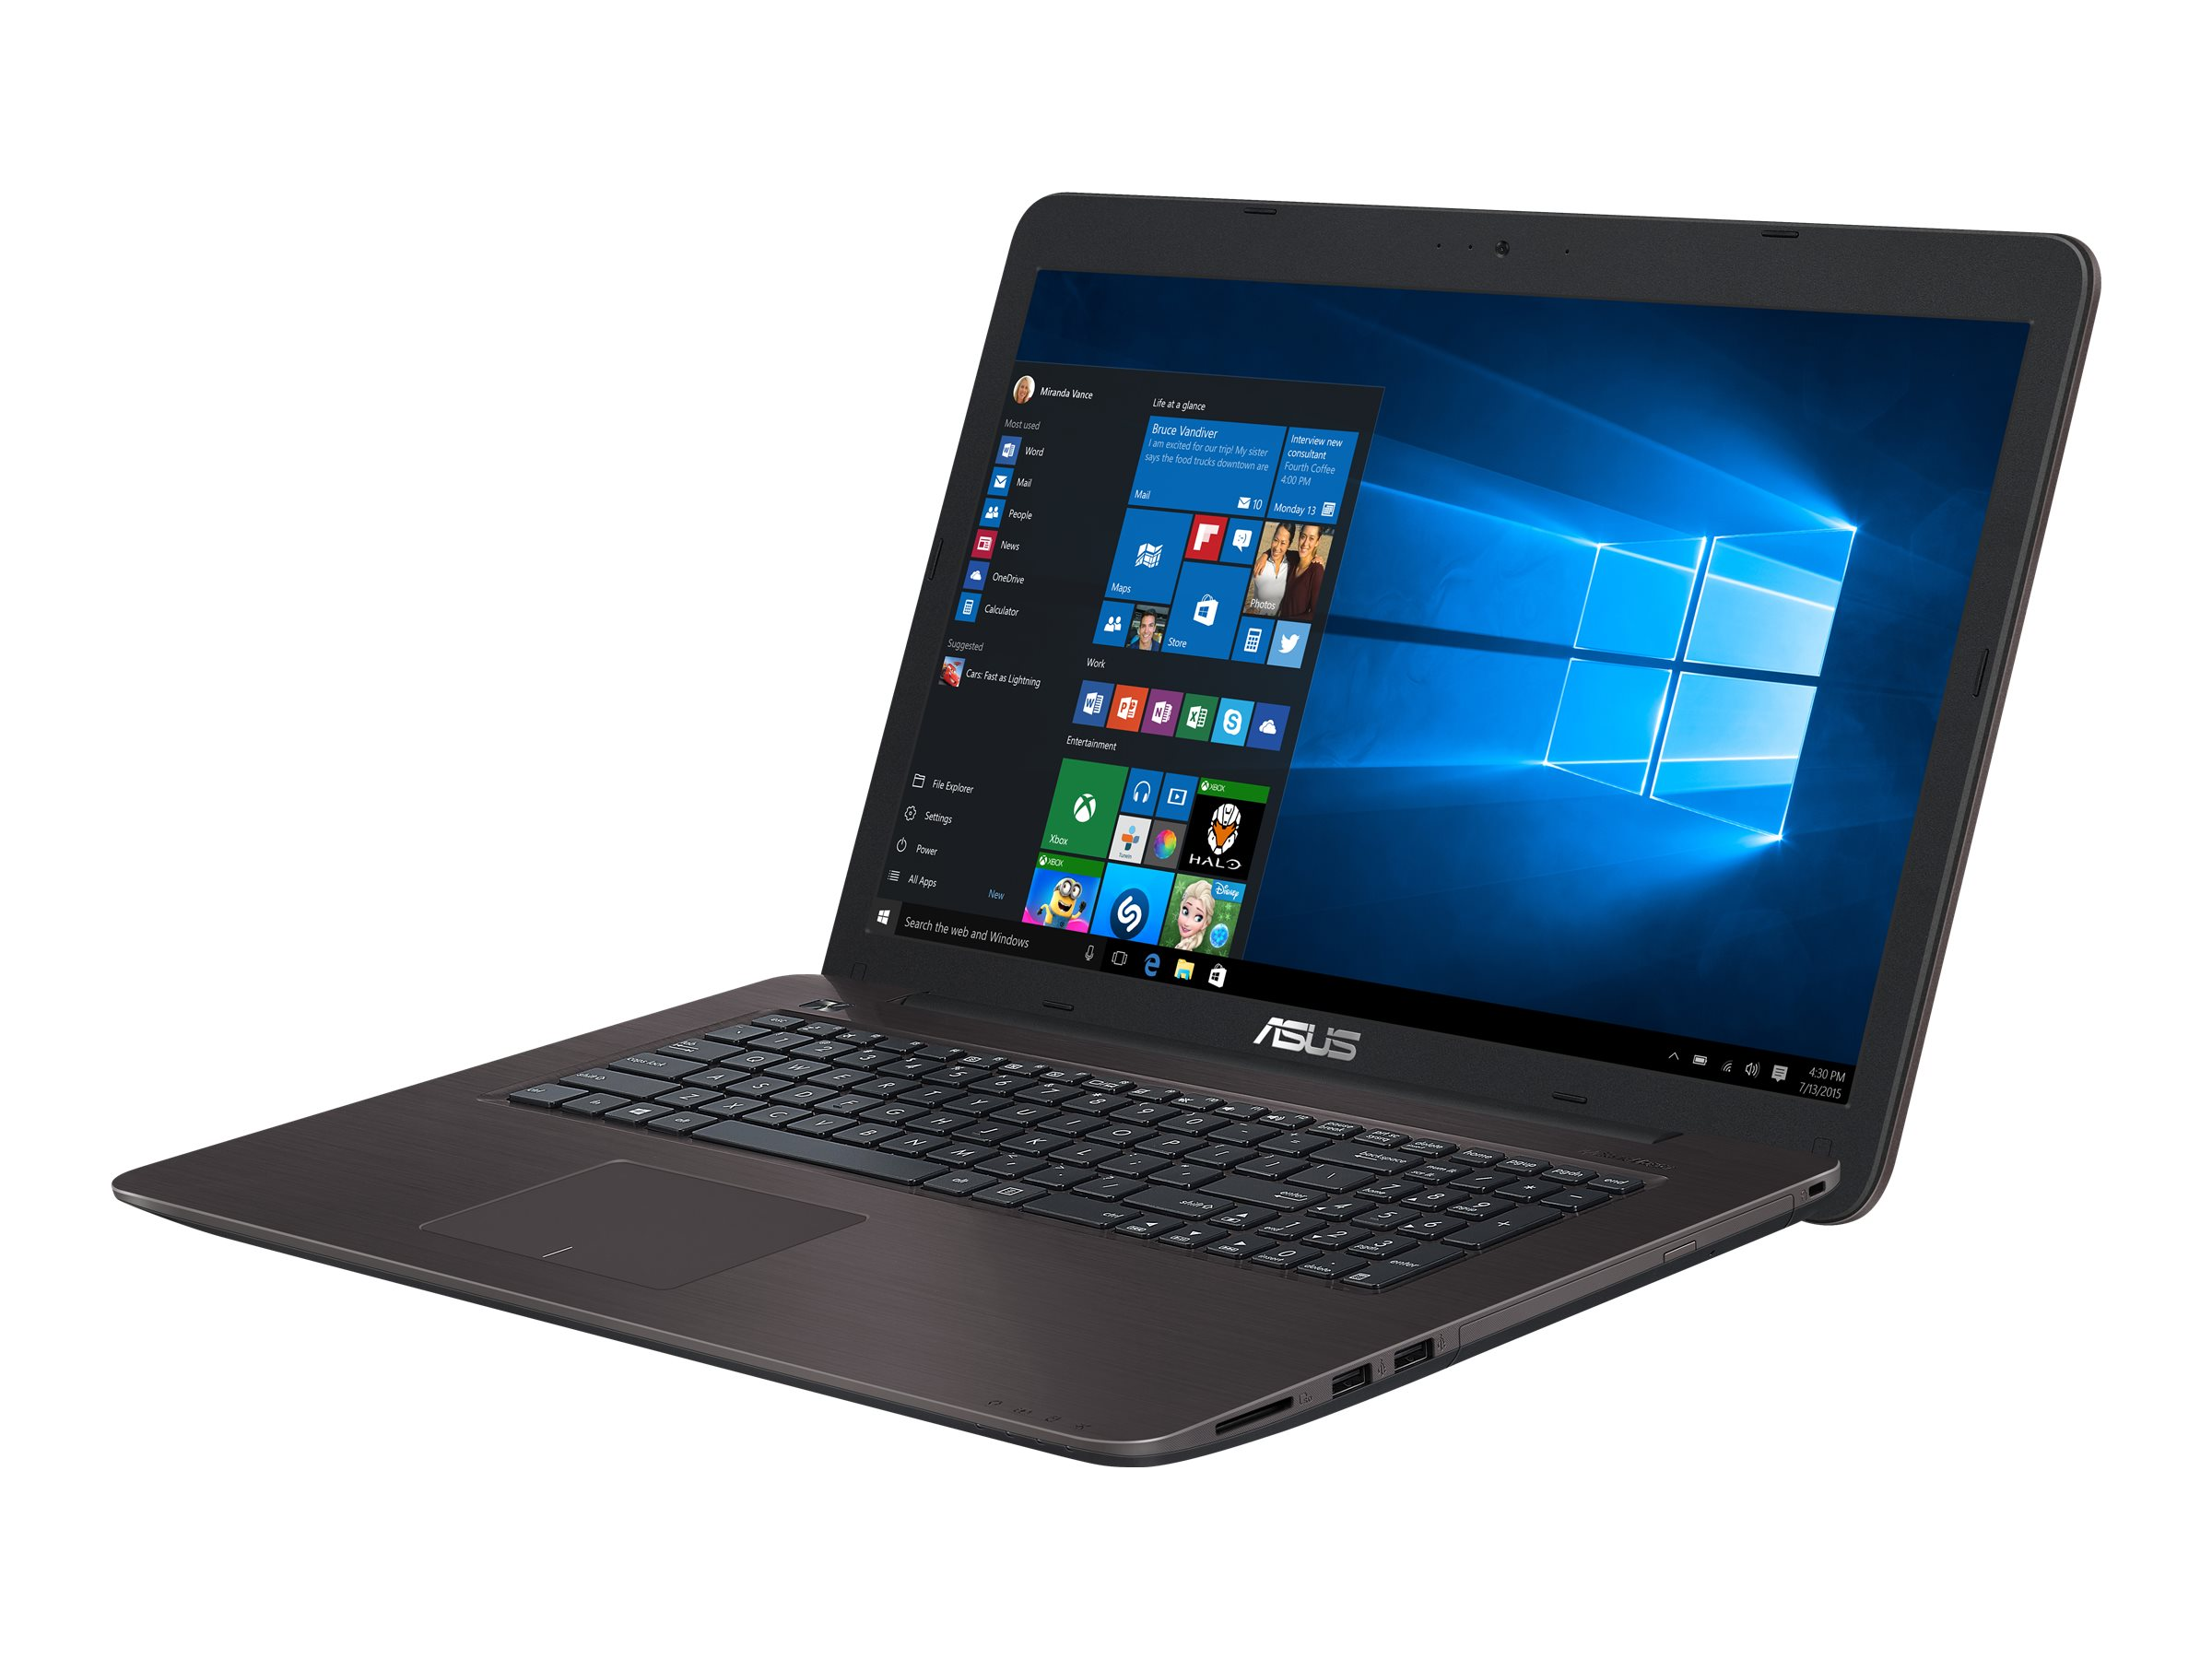 ASUS X756UX-T4244T - Core i7 7500U / 2.7 GHz - Win 10 Home 64-Bit - 16 GB RAM - 128 GB SSD + 1 TB HDD - DVD SuperMulti